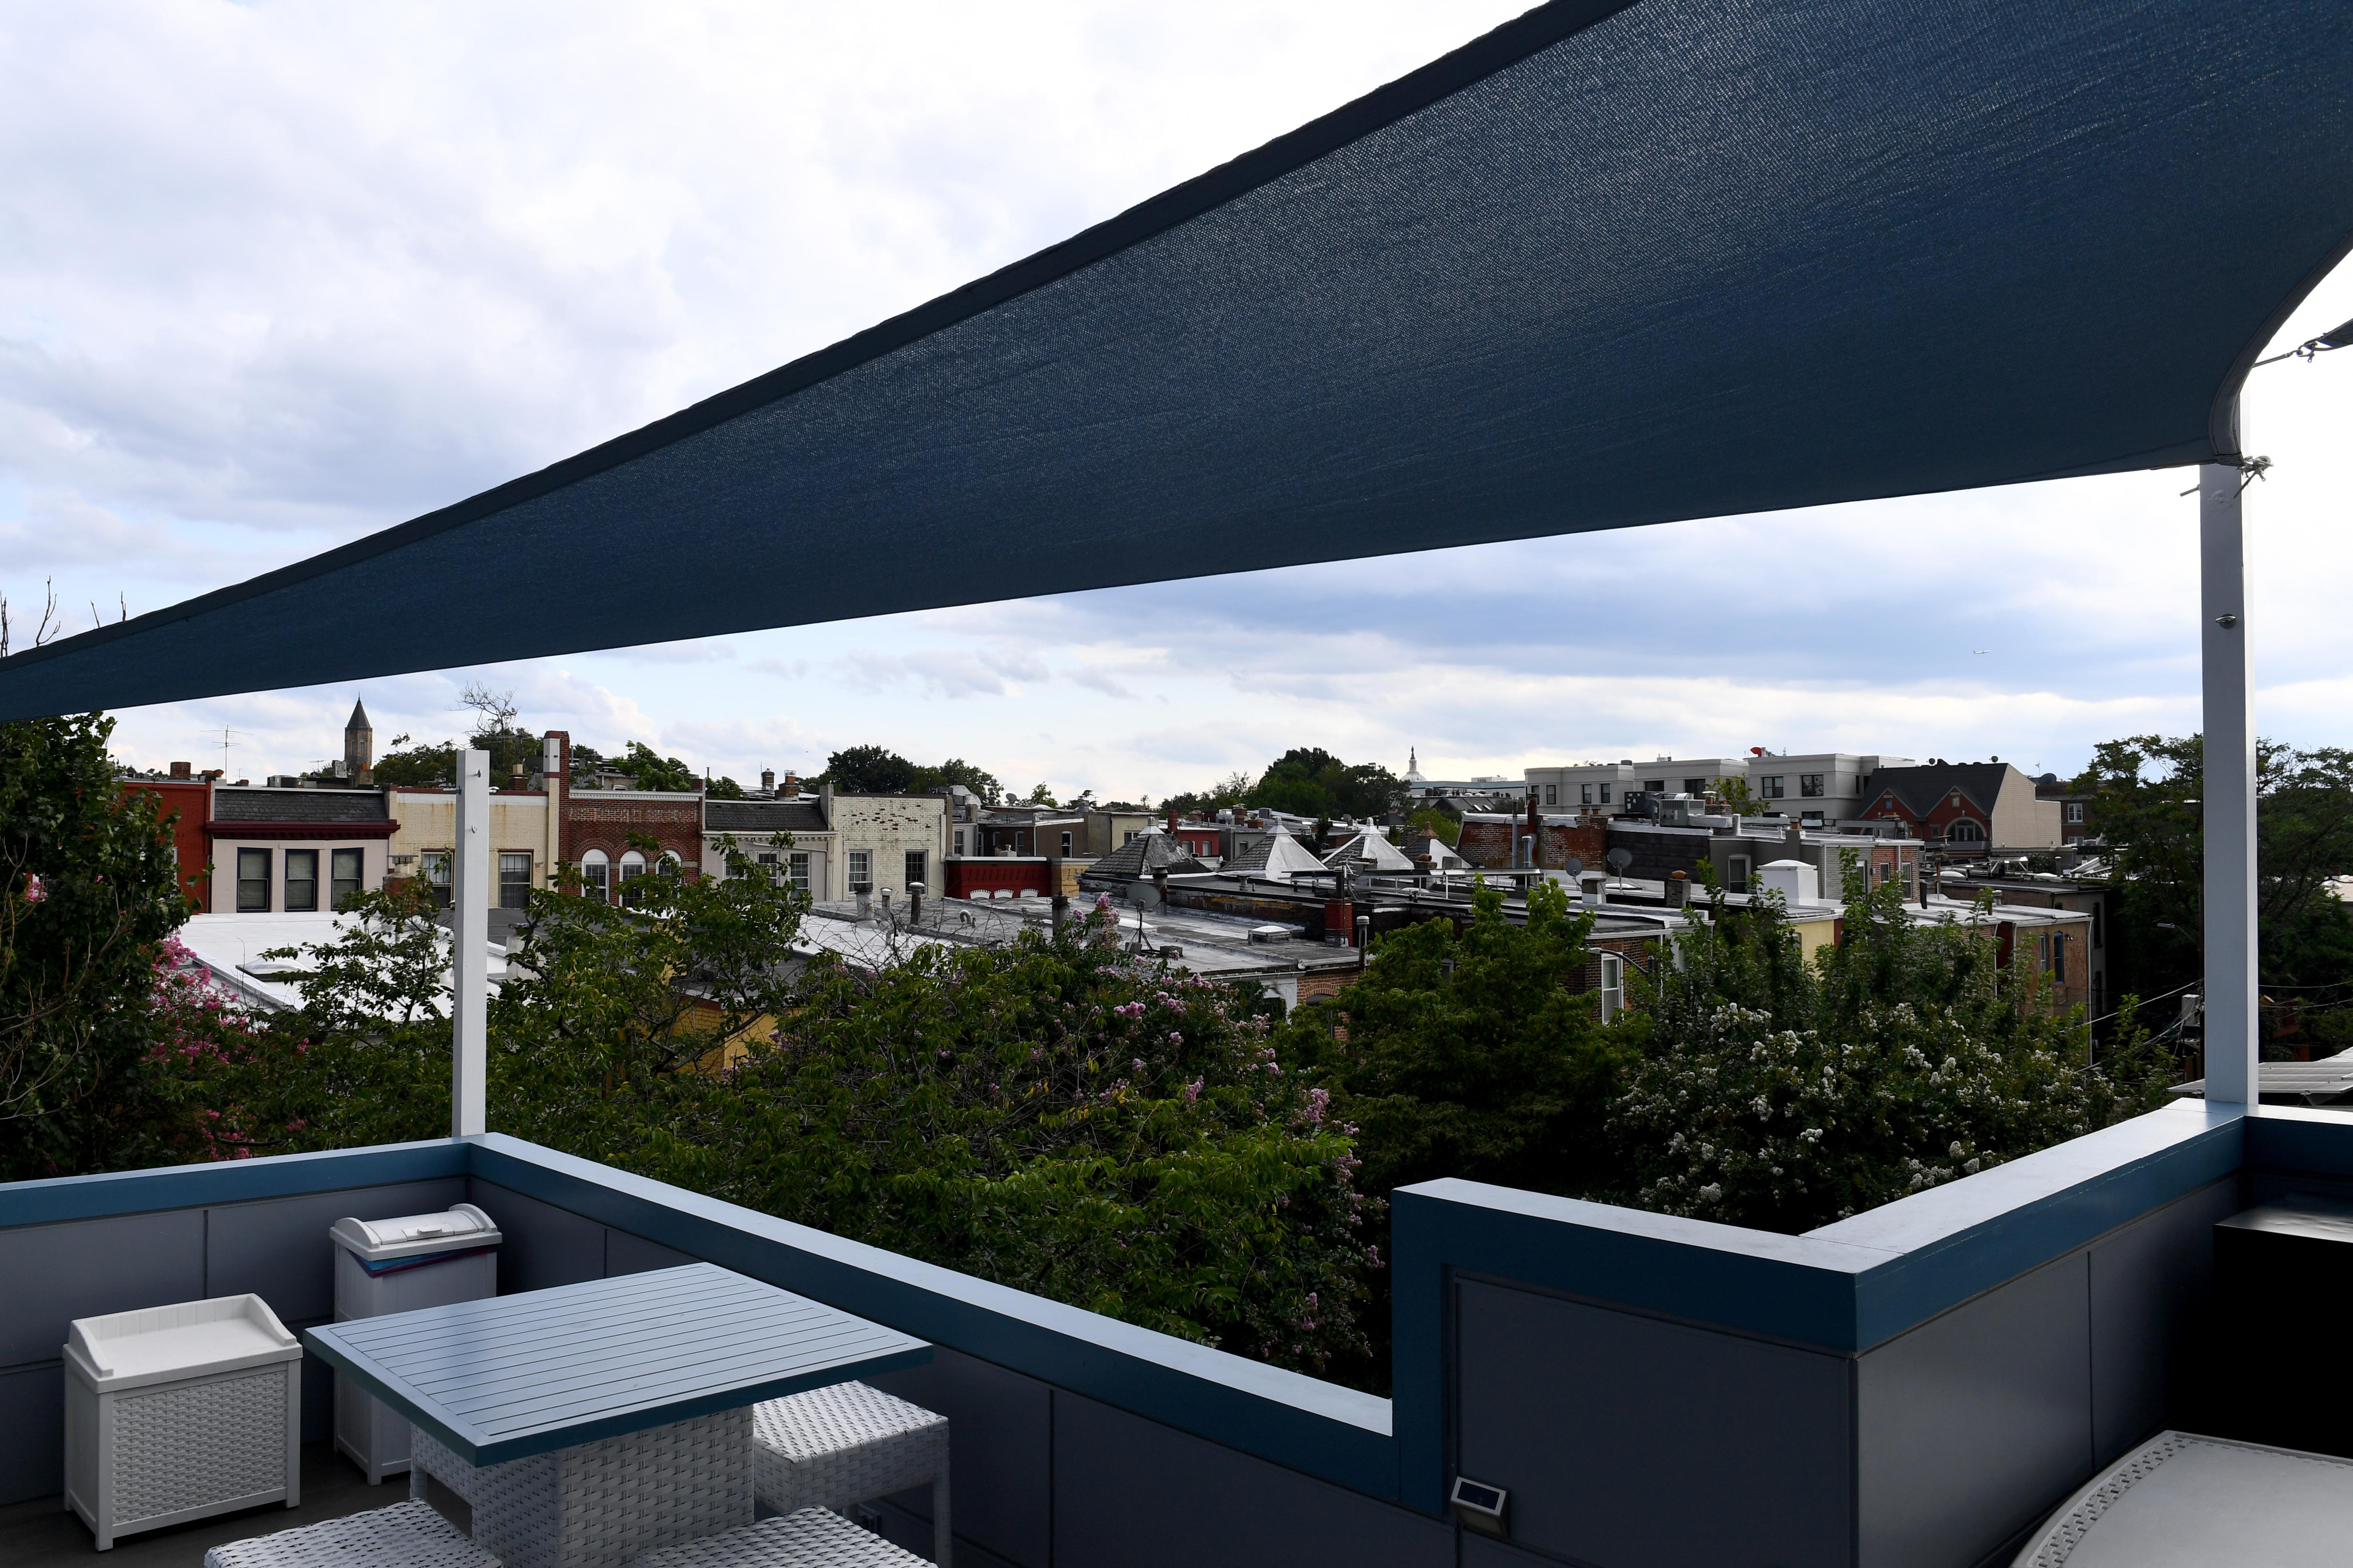 Roof Decks Are Ideal For Enjoying Cool Evenings But Adding One Won T Be A Breeze The Washington Post